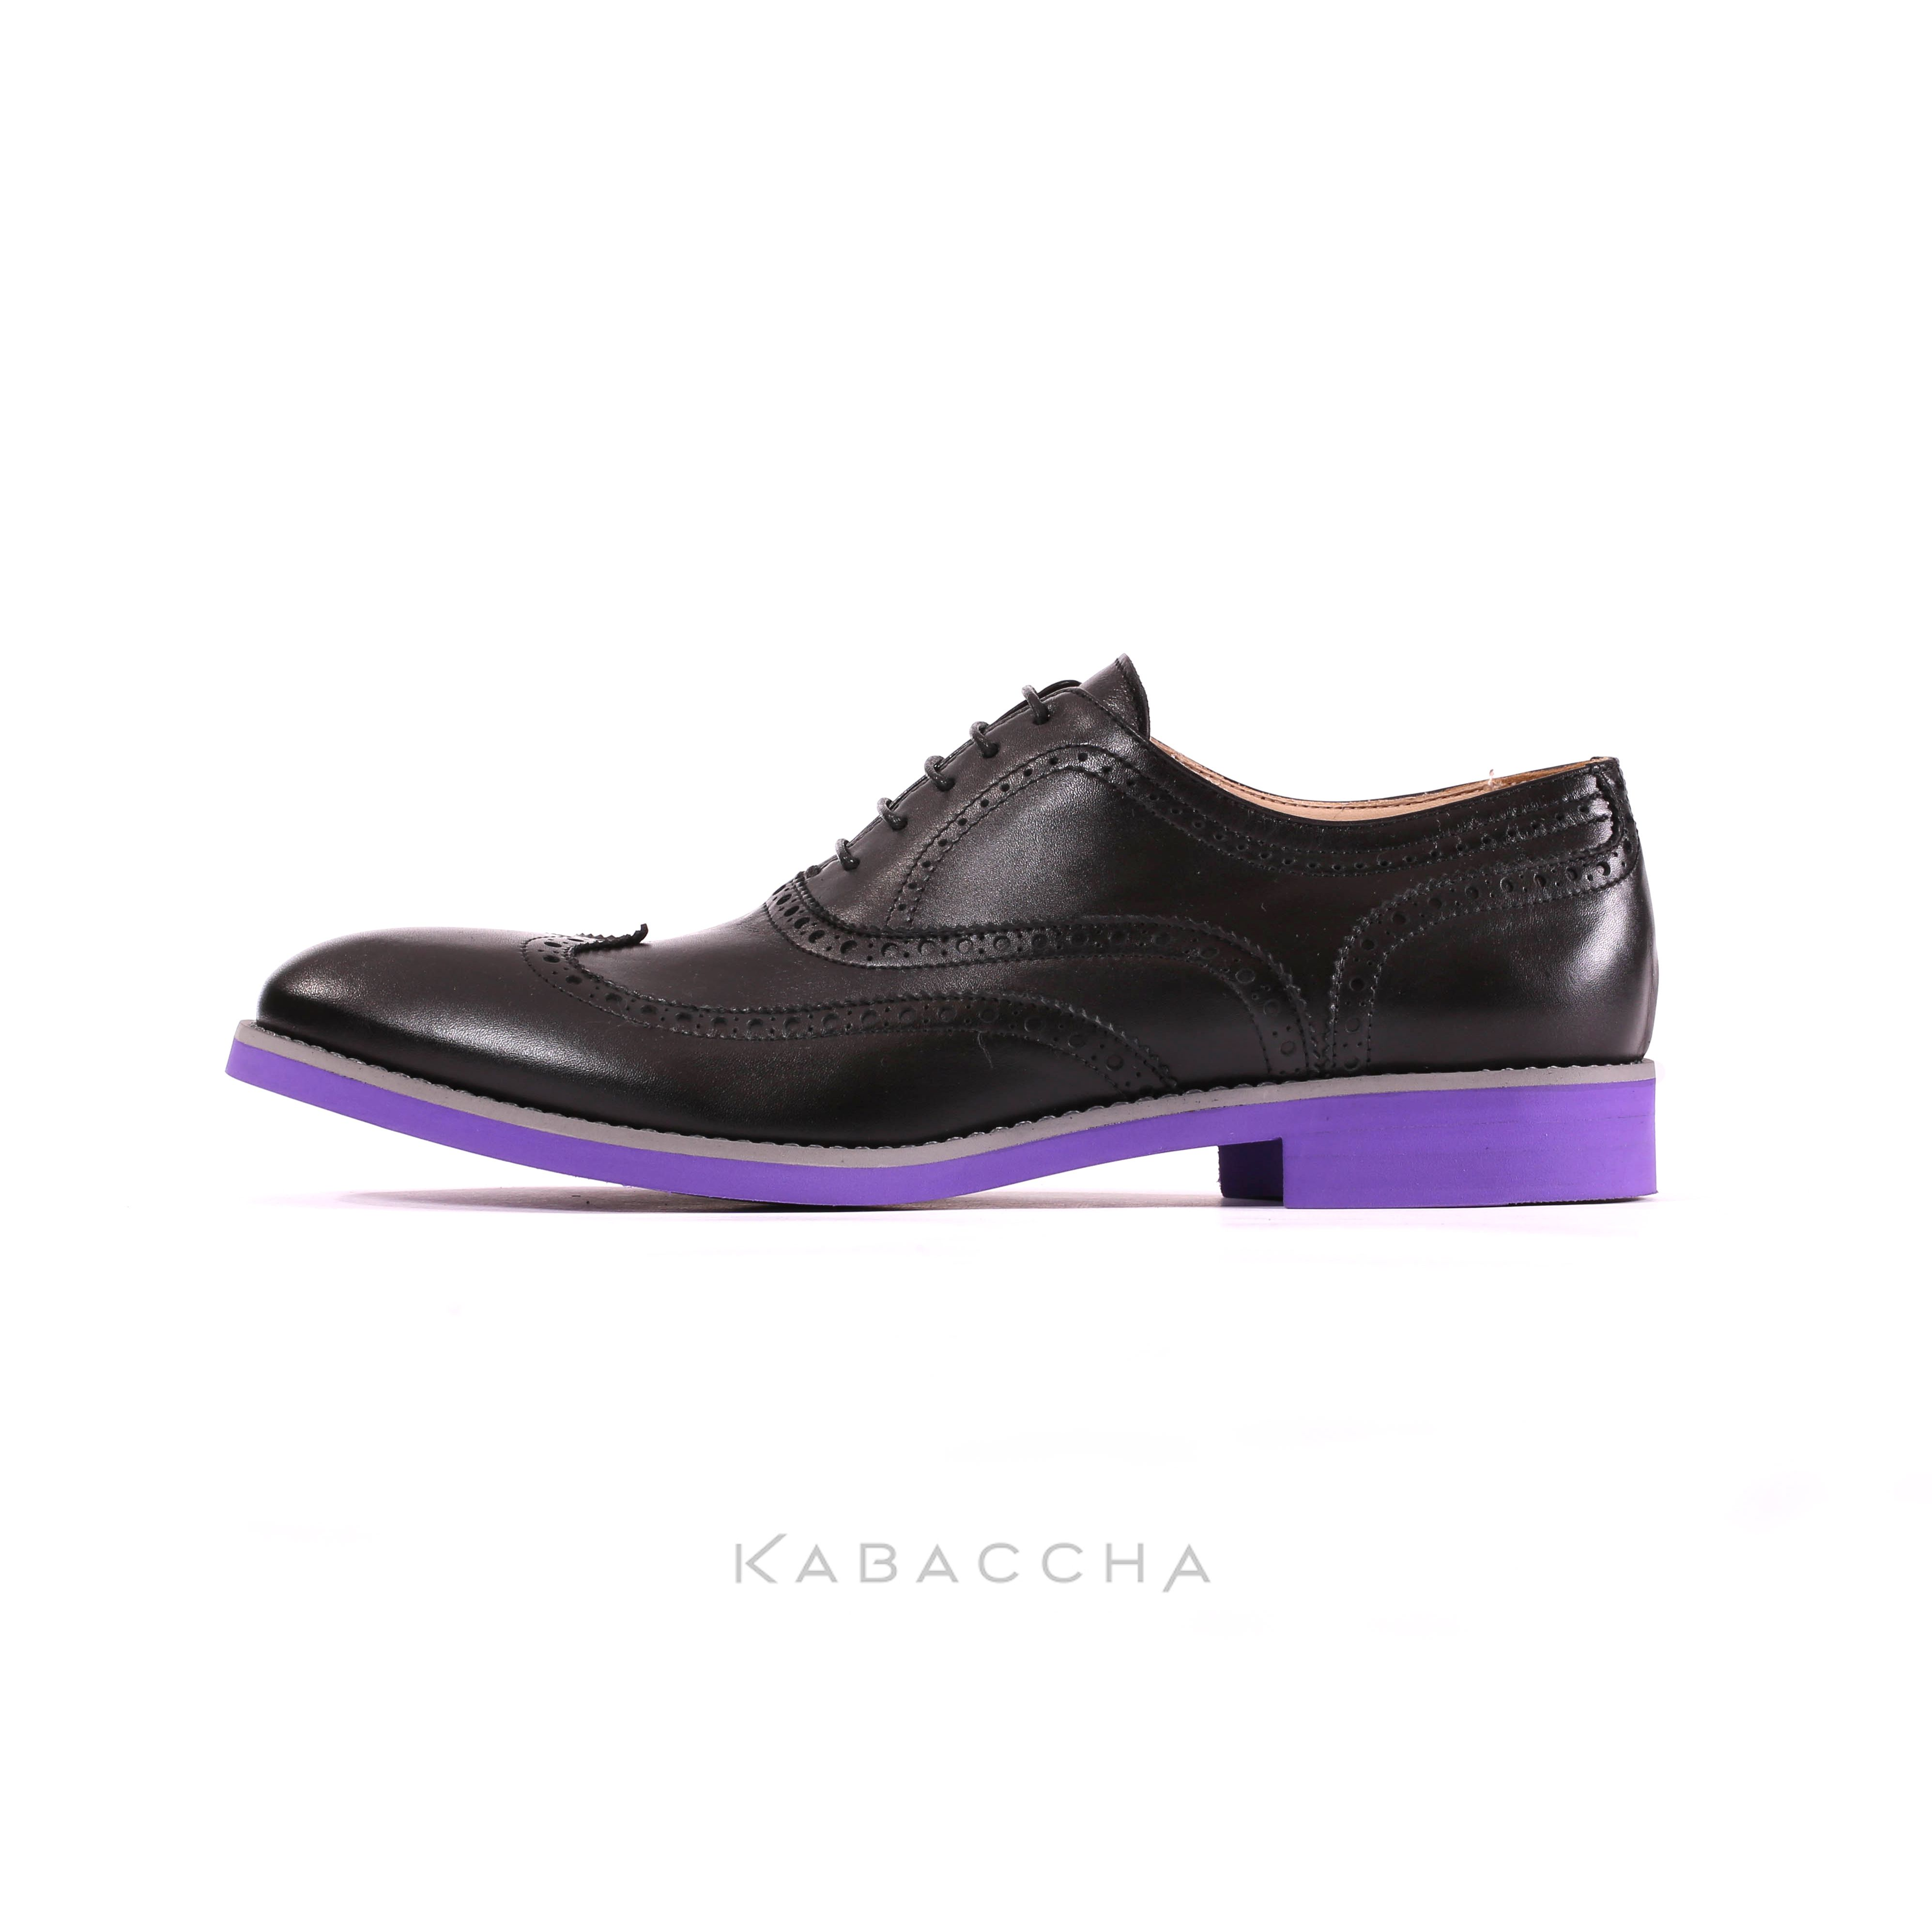 Kabaccha Shoes Black Nappa Leather Grey Purple Sole Wingtip Kabacchashoes Wingtips Dress Shoes Men Most Comfortable Shoes Shoes [ 3990 x 3990 Pixel ]